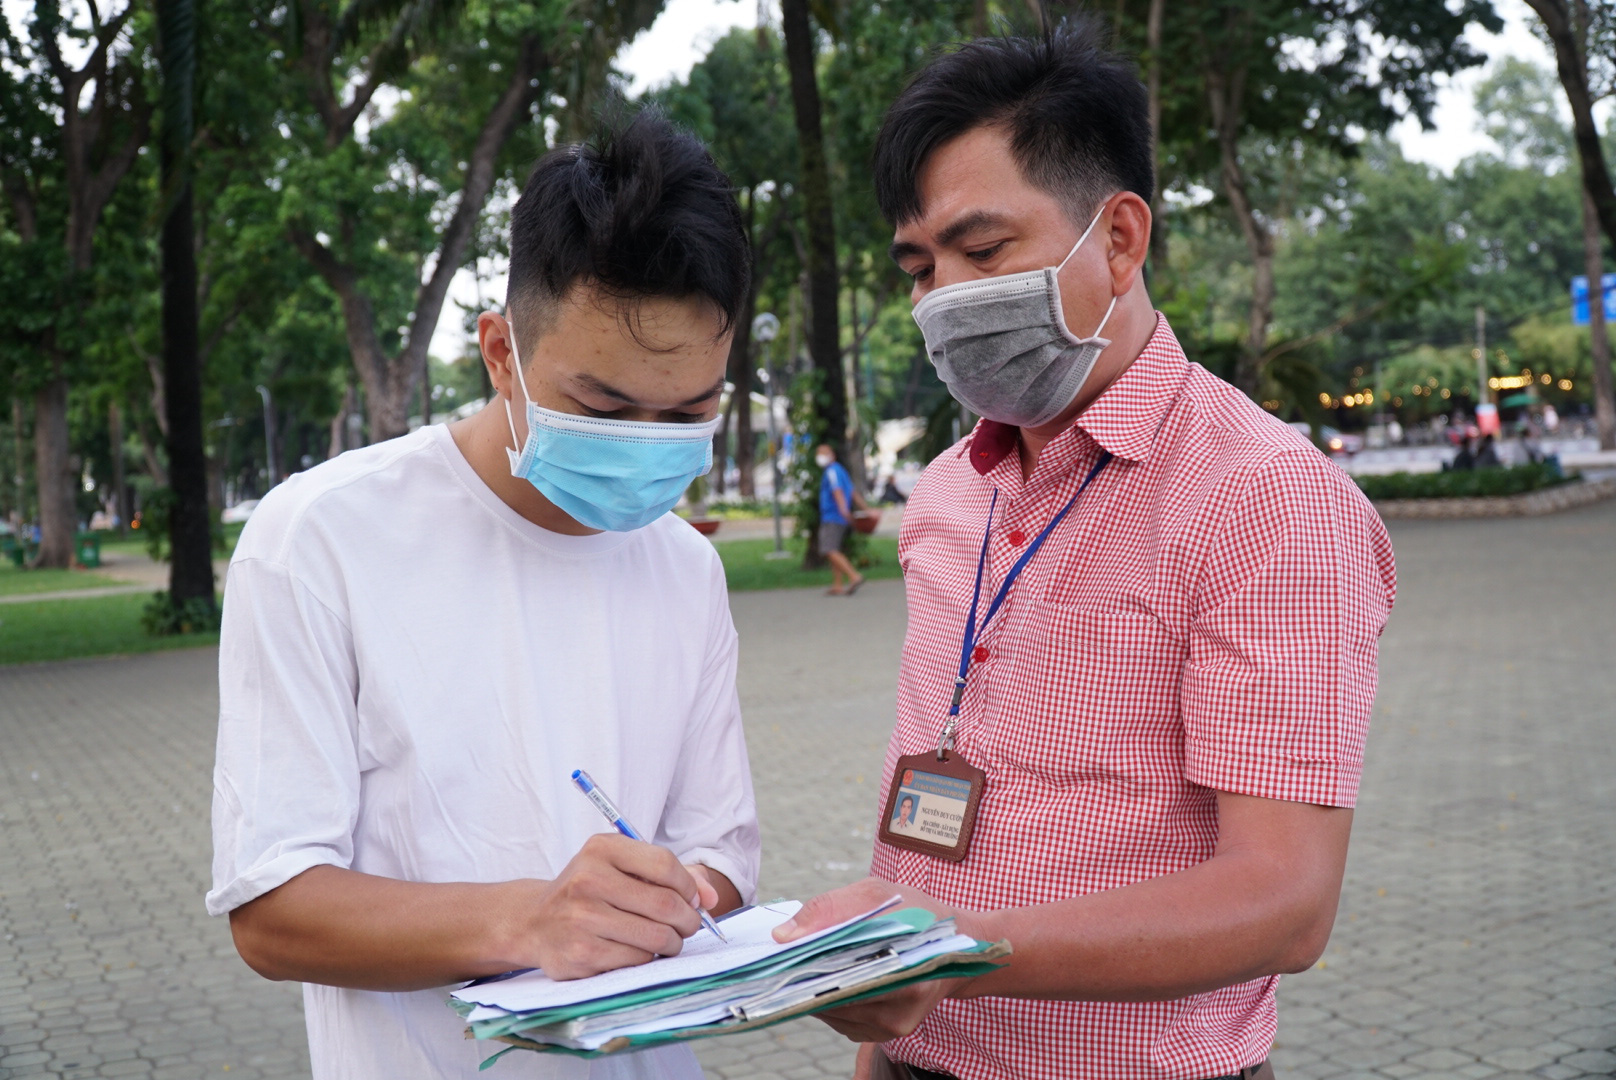 A man is booked for failure to wear a face mask while exercising at Gia Dinh Park in Phu Nhuan District, Ho Chi Minh City, April 28, 2021. Photo: D.T. / Tuoi Tre